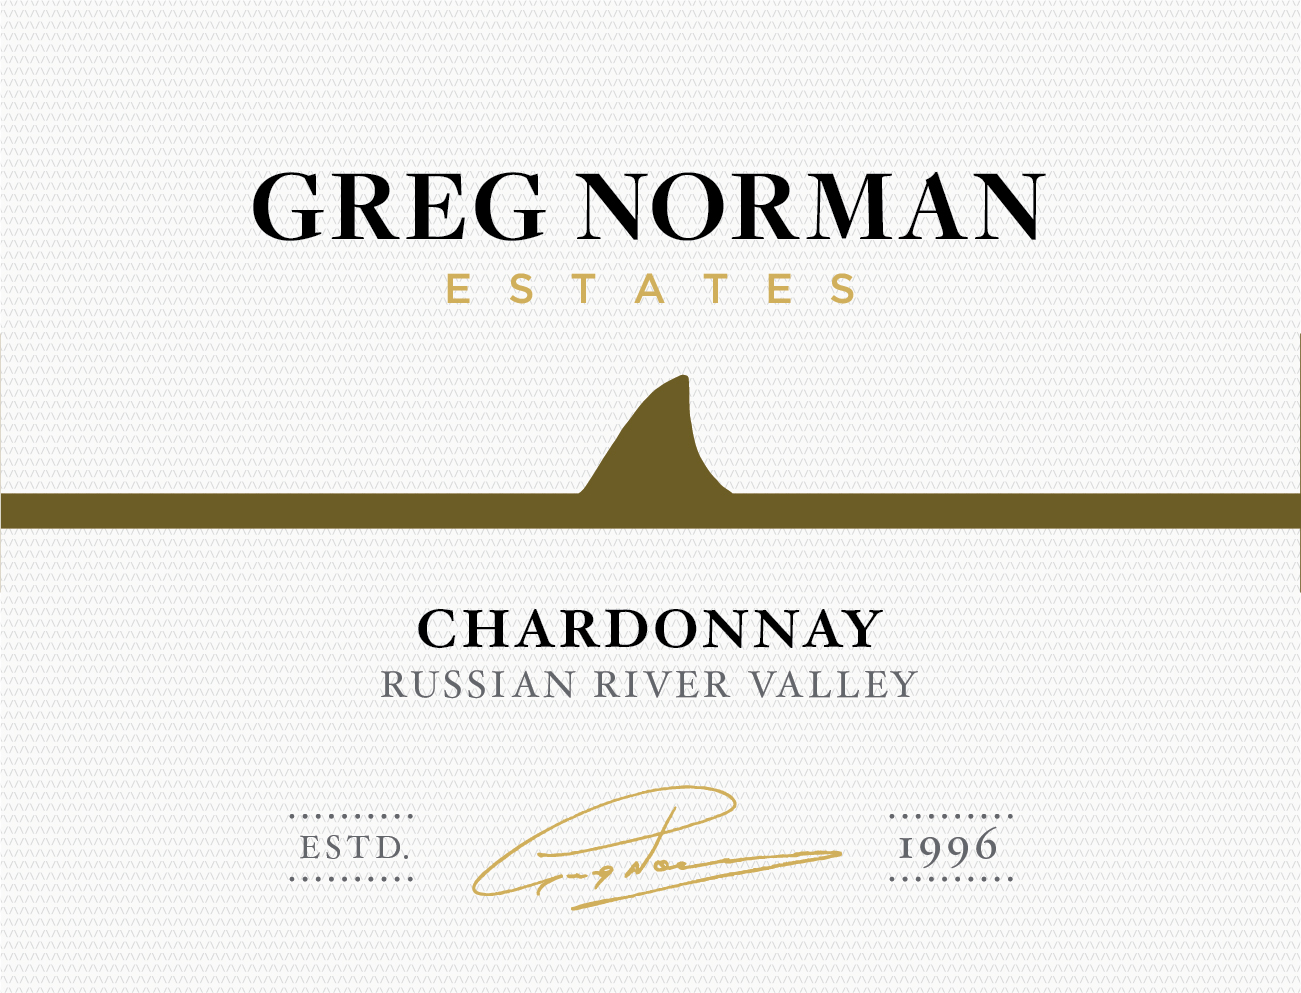 Greg Norman Estates Russian River Chardonnay 2019 THUMBNAIL